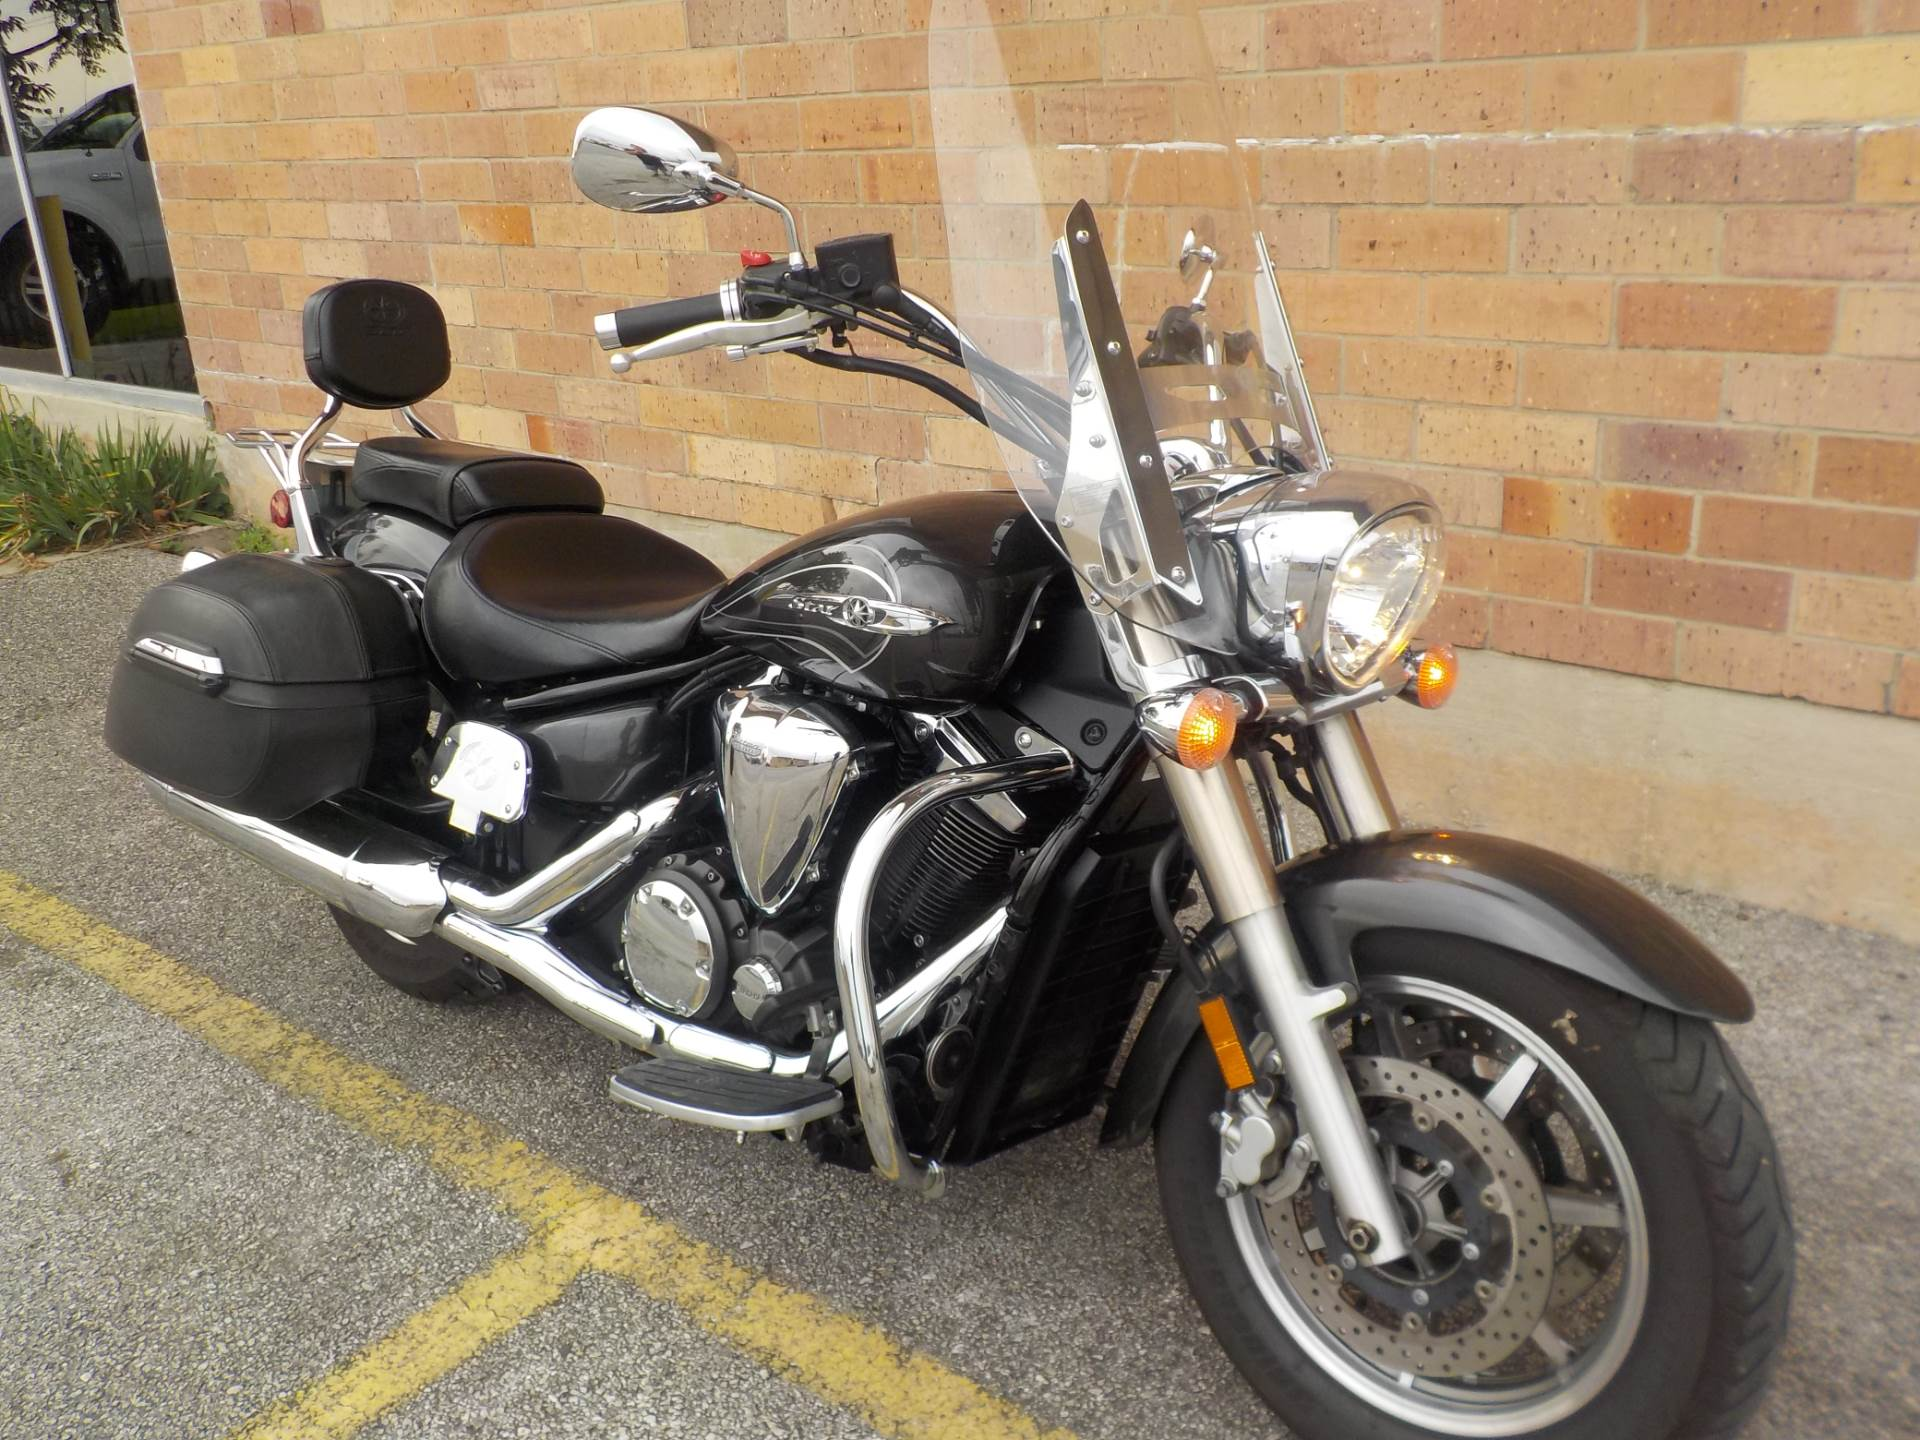 2012 Yamaha V Star 1300 Tourer in San Antonio, Texas